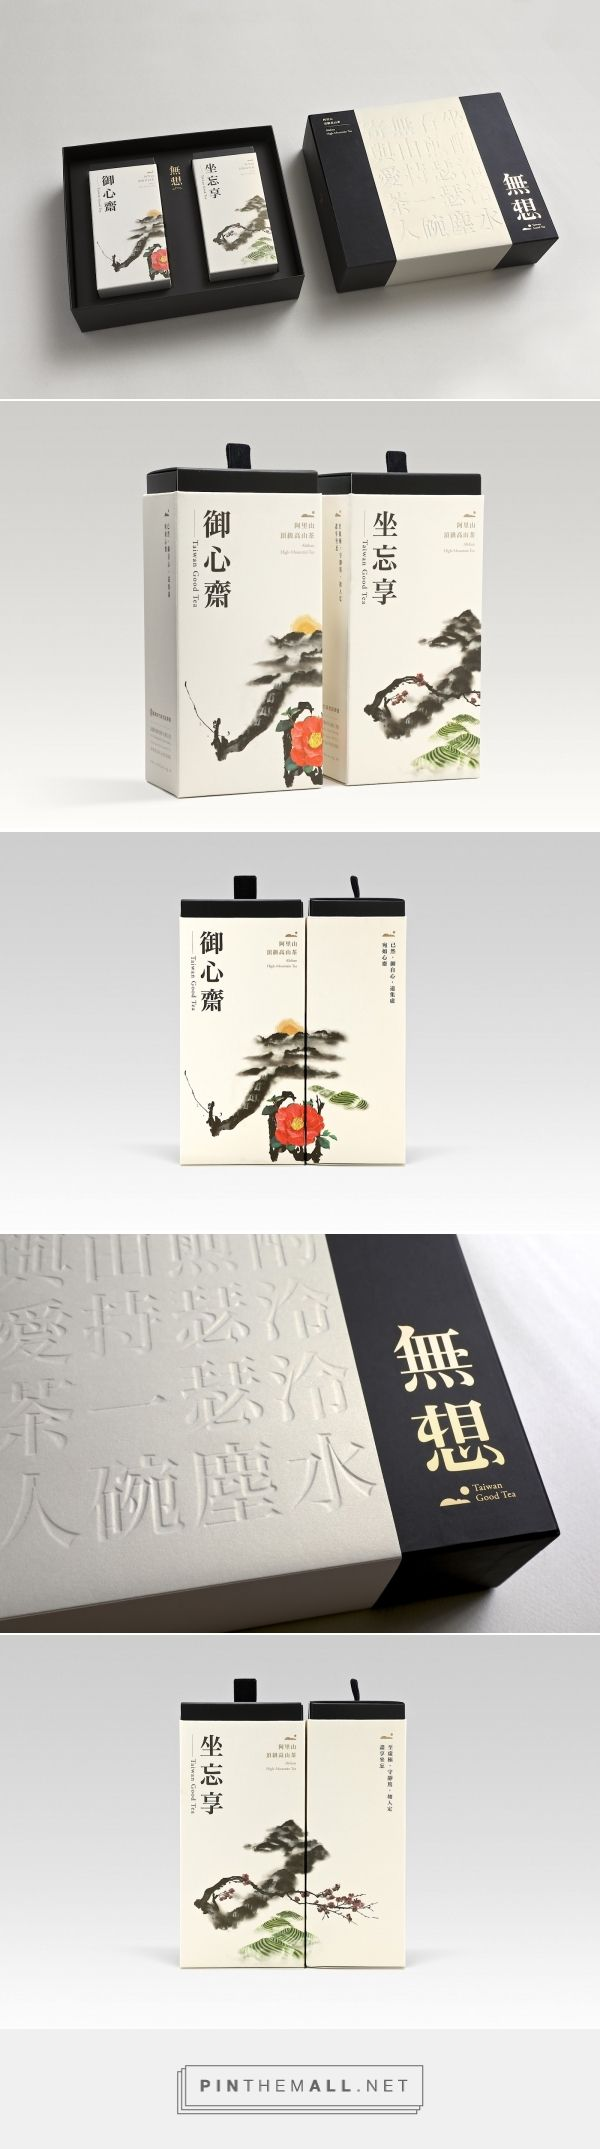 Twilight Alisan High Mountain Tea Gift Box design by HOORA - http://www.packagingoftheworld.com/2017/05/twilight-alisan-high-mountain-tea-gift.html